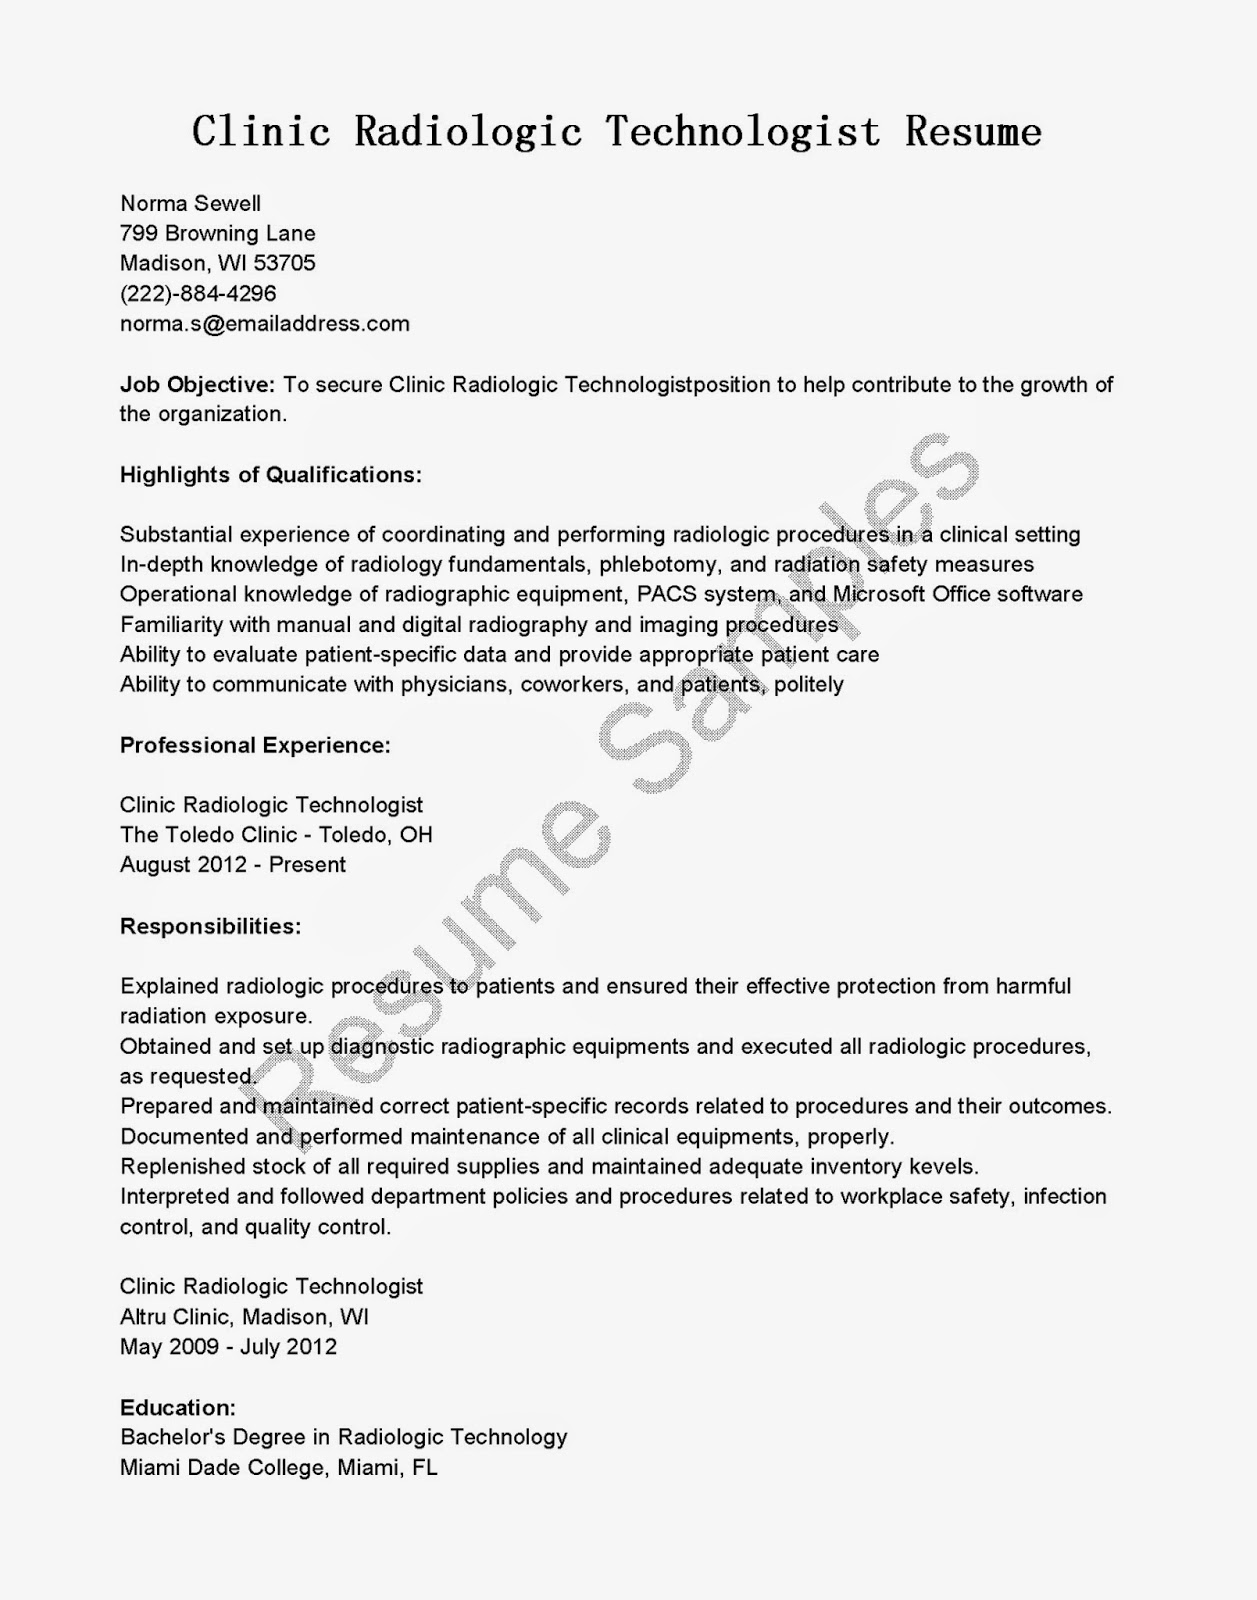 resume samples  clinic radiologic technologist resume sample